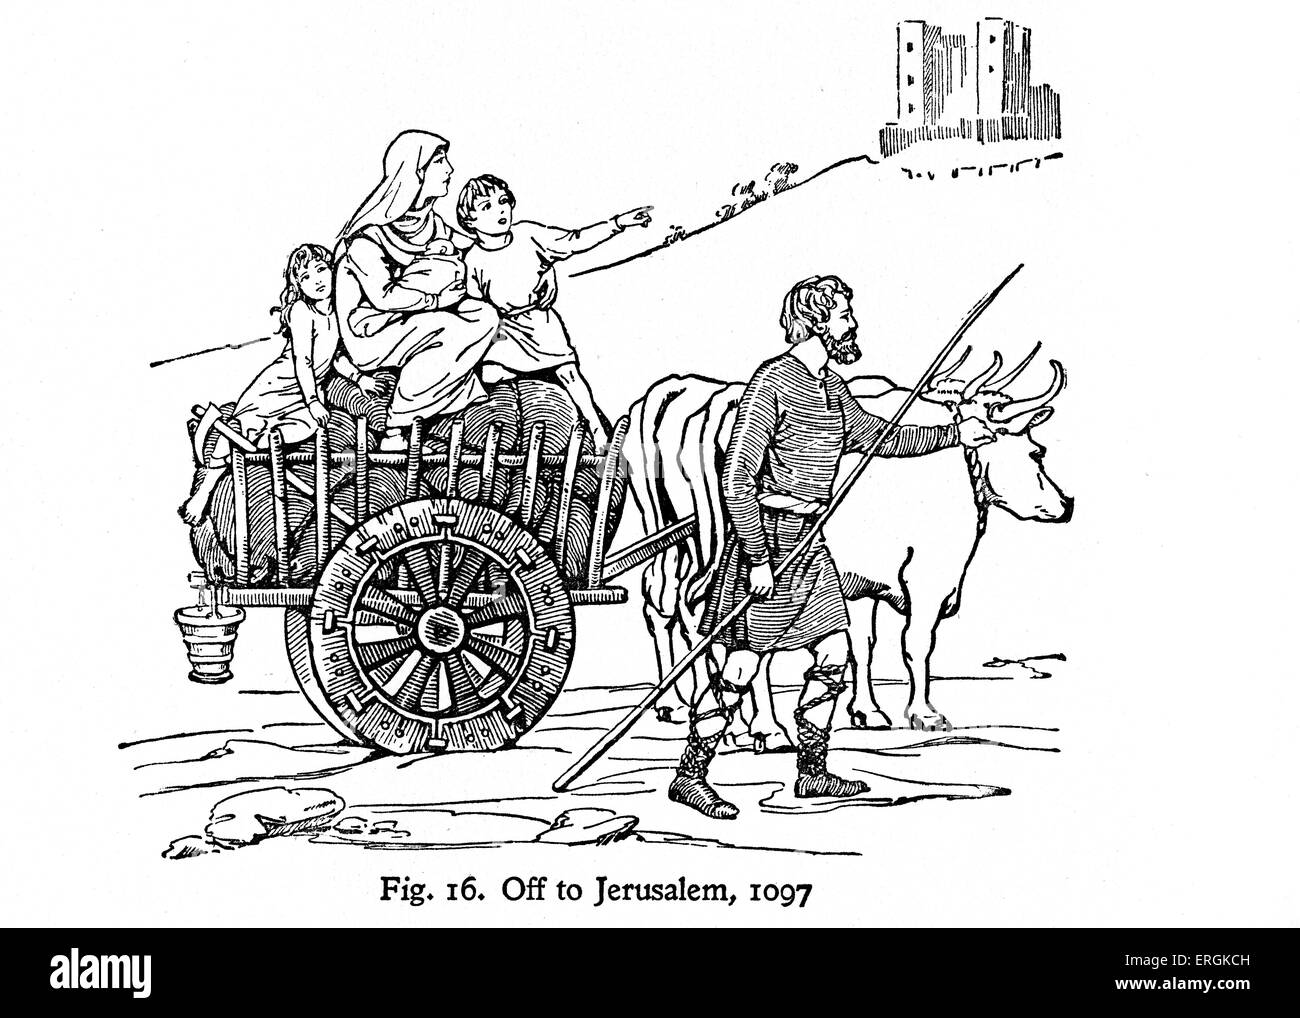 Pilgrims en route to Jerusalem, during the era of the first crusade (1096-99) - Stock Image